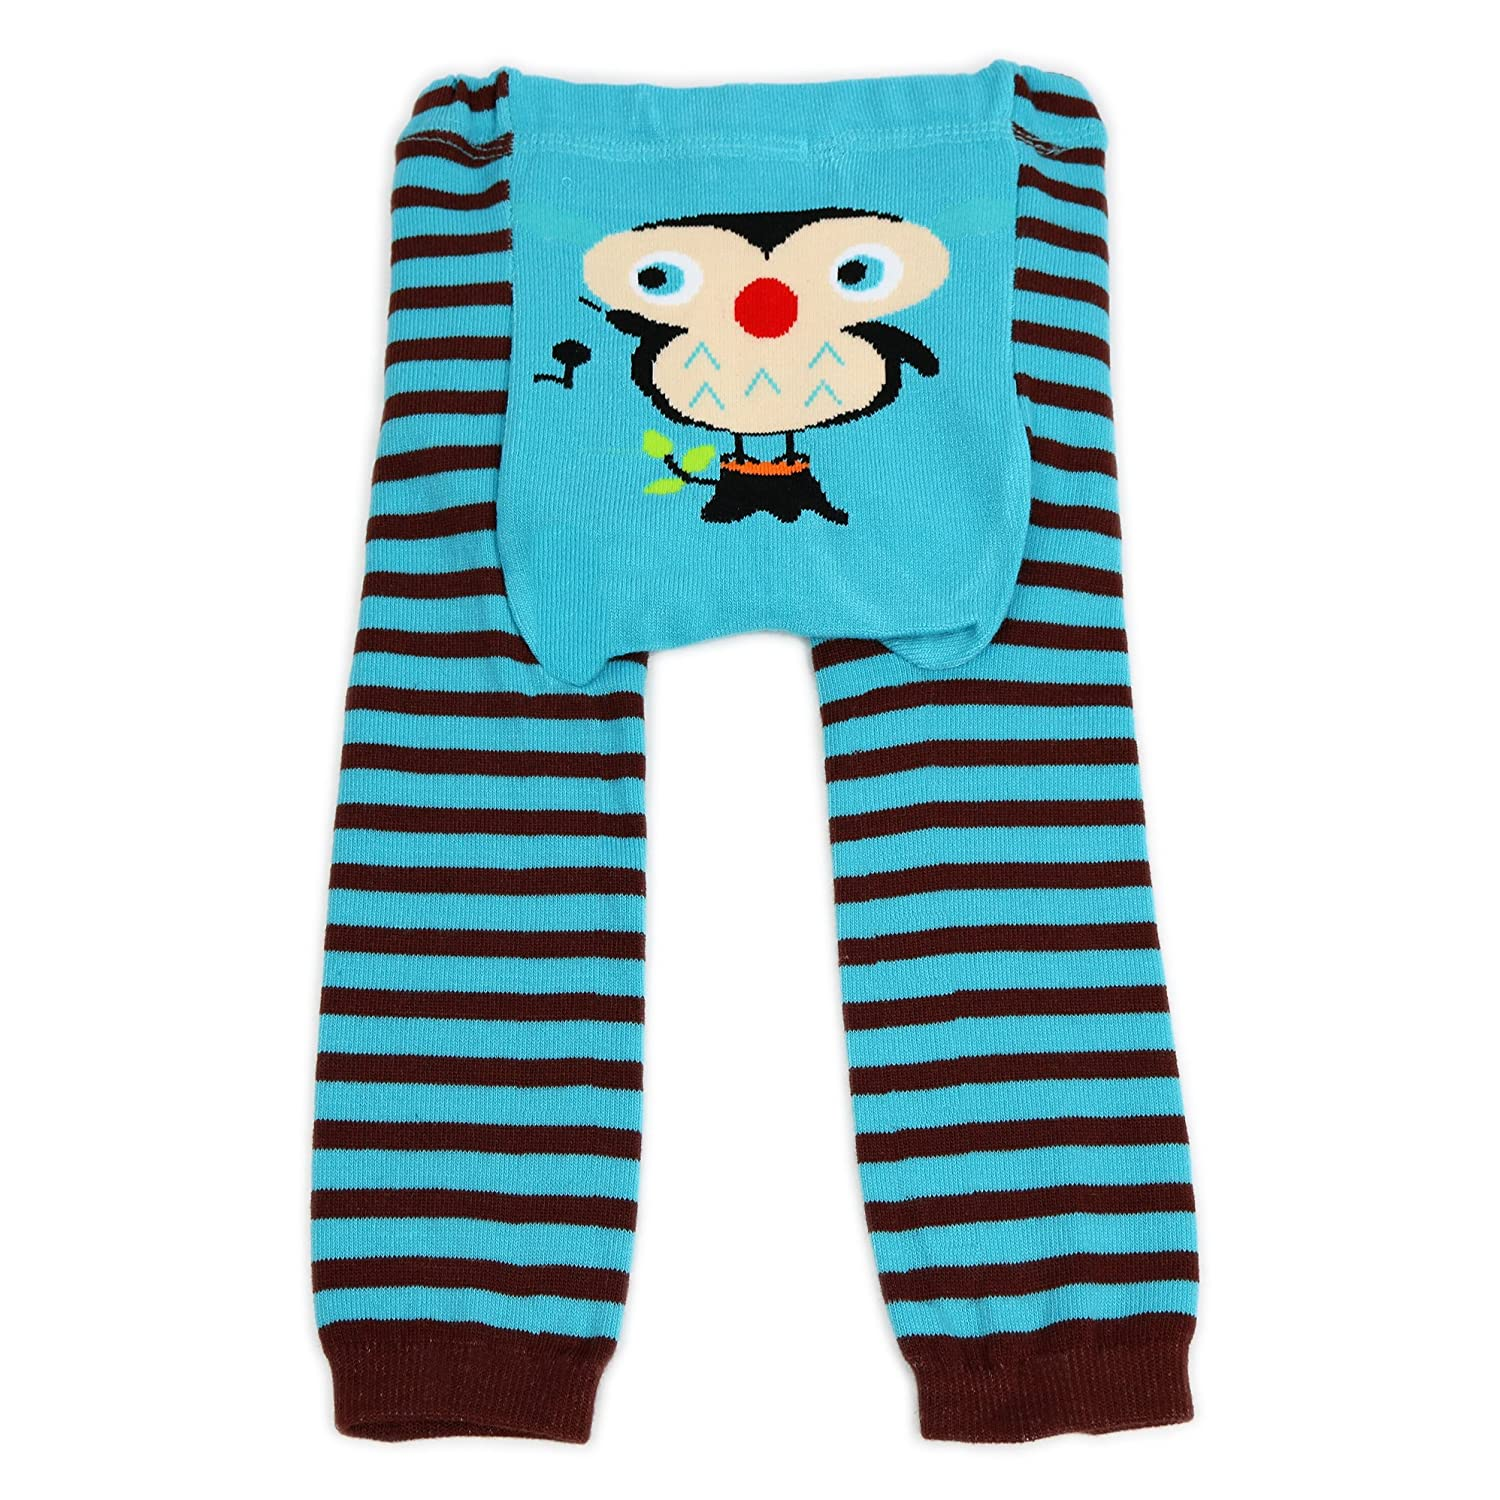 Baby & Toddler Wooly Leggings by Dotty Fish - Animal Designs - 6-12 months, 12-24 months & 24+ months Busha